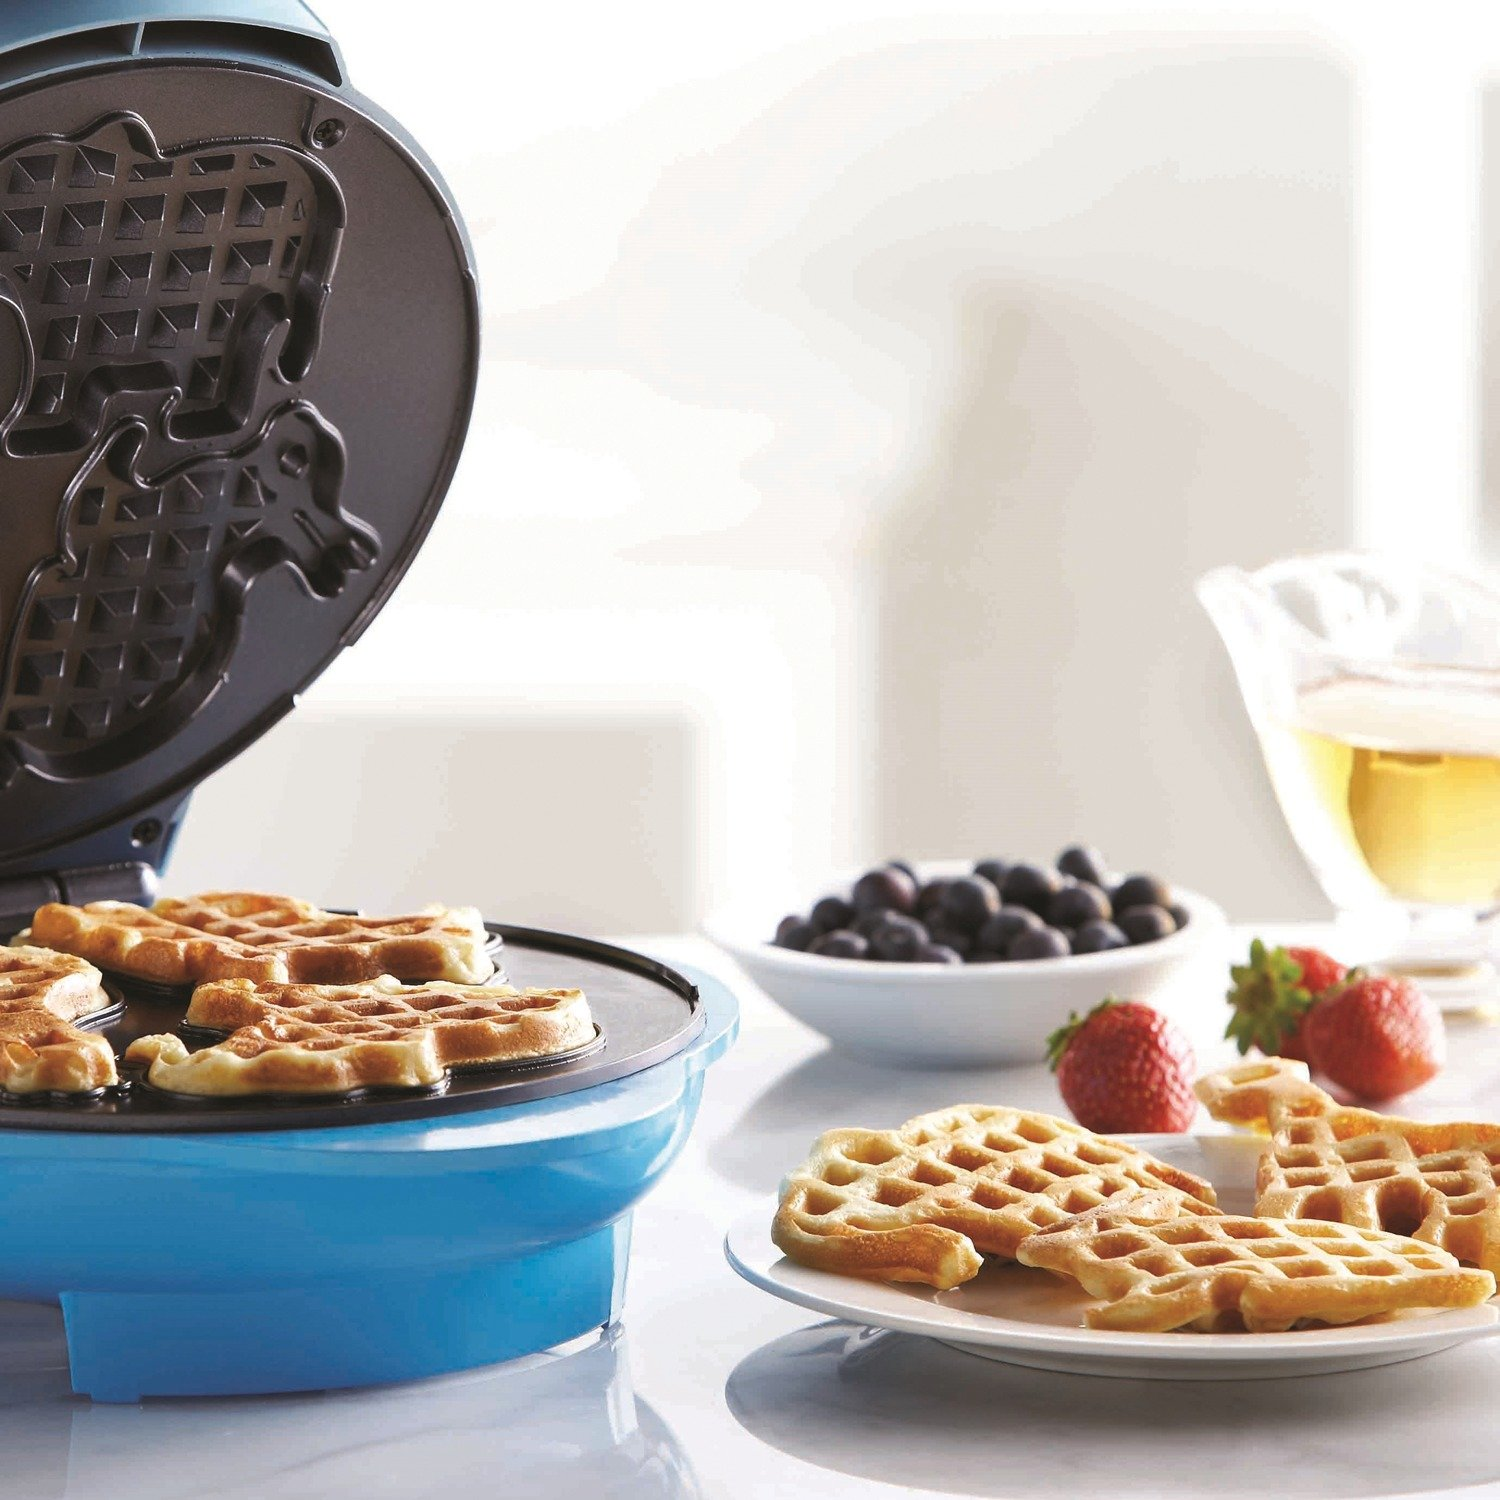 Brentwood TS-253 Appliances Electric Food Maker-Animal-Shapes Waffle Maker, Blue by Brentwood (Image #4)